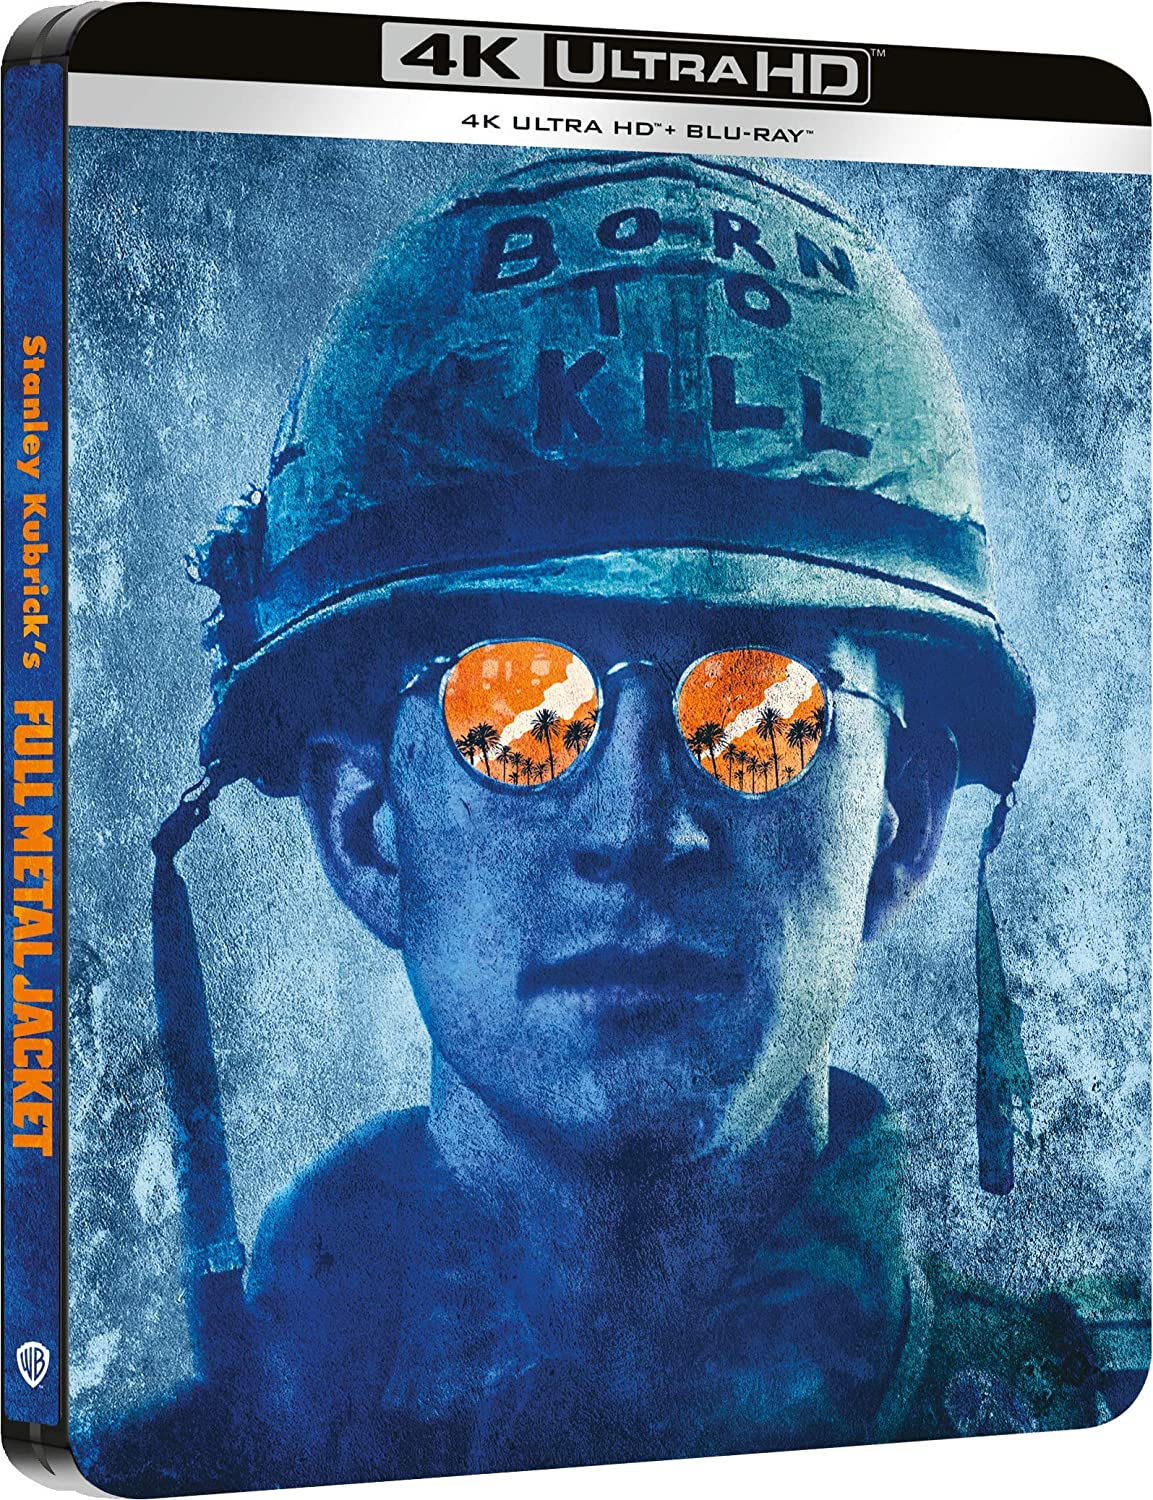 FULL METAL JACKET (STEELBOOK) (4K ULTRA HD + BLU-RAY)